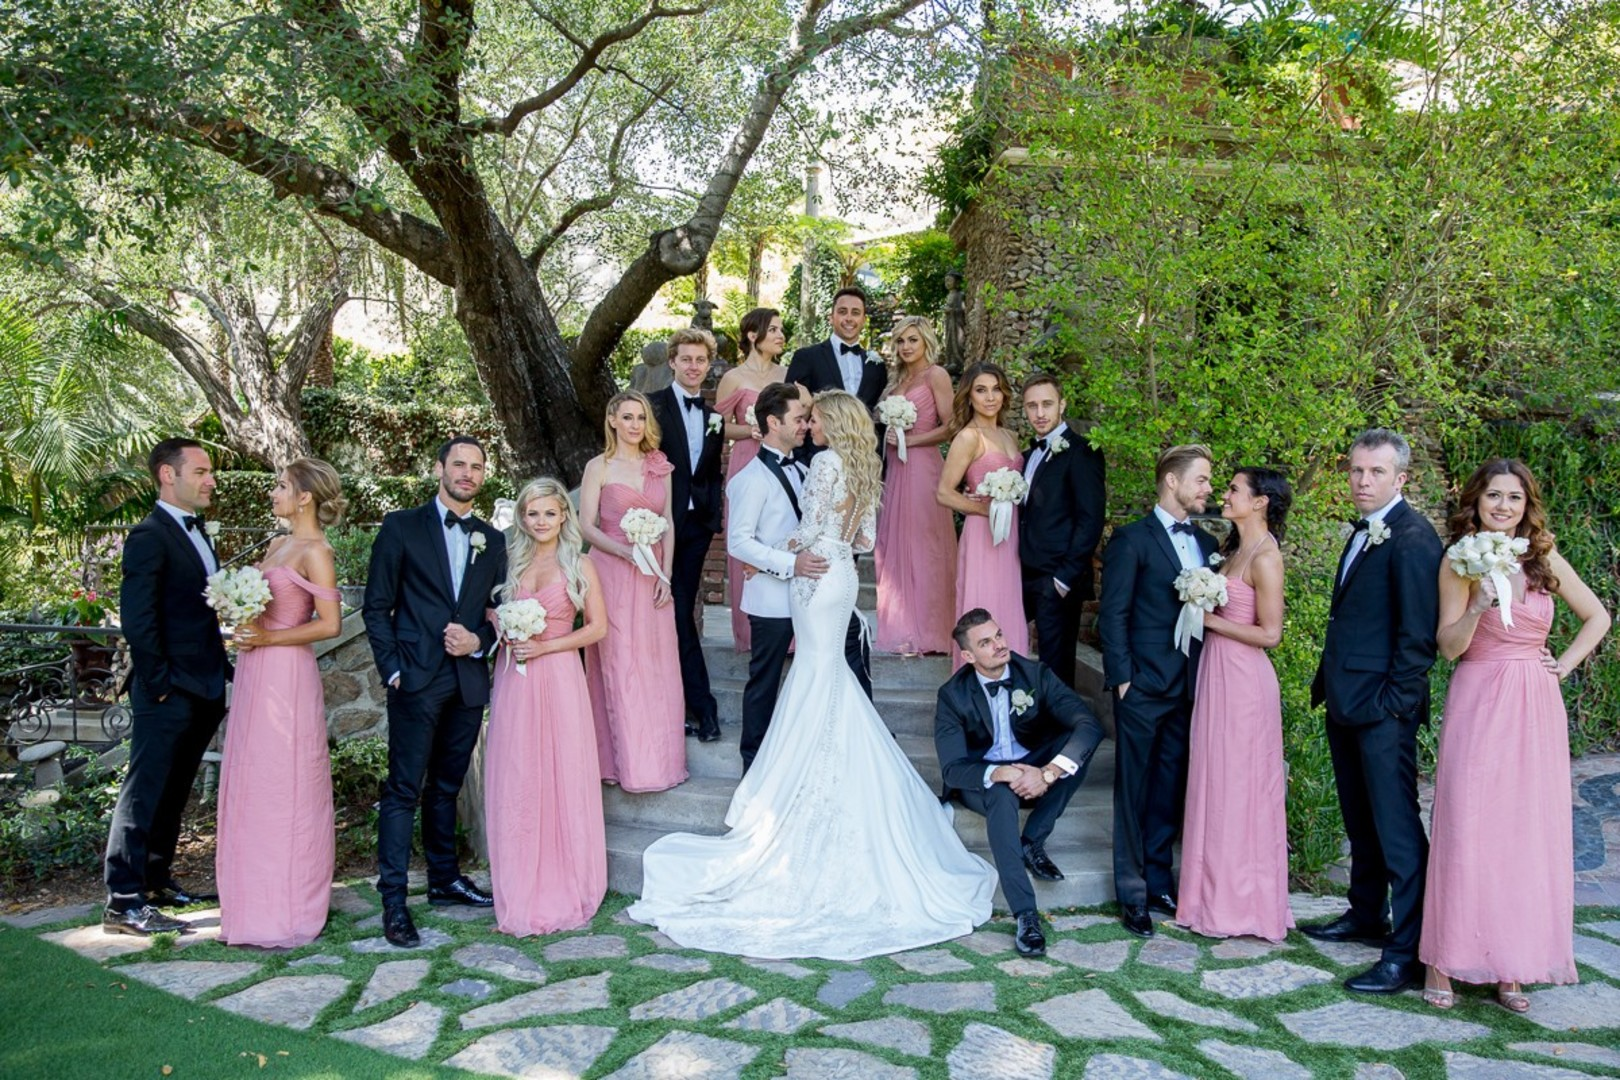 DWTS' Emma Slater and Sasha Farber's Wedding, Bella Blanca Event Center, Emma and Sasha's bridal party